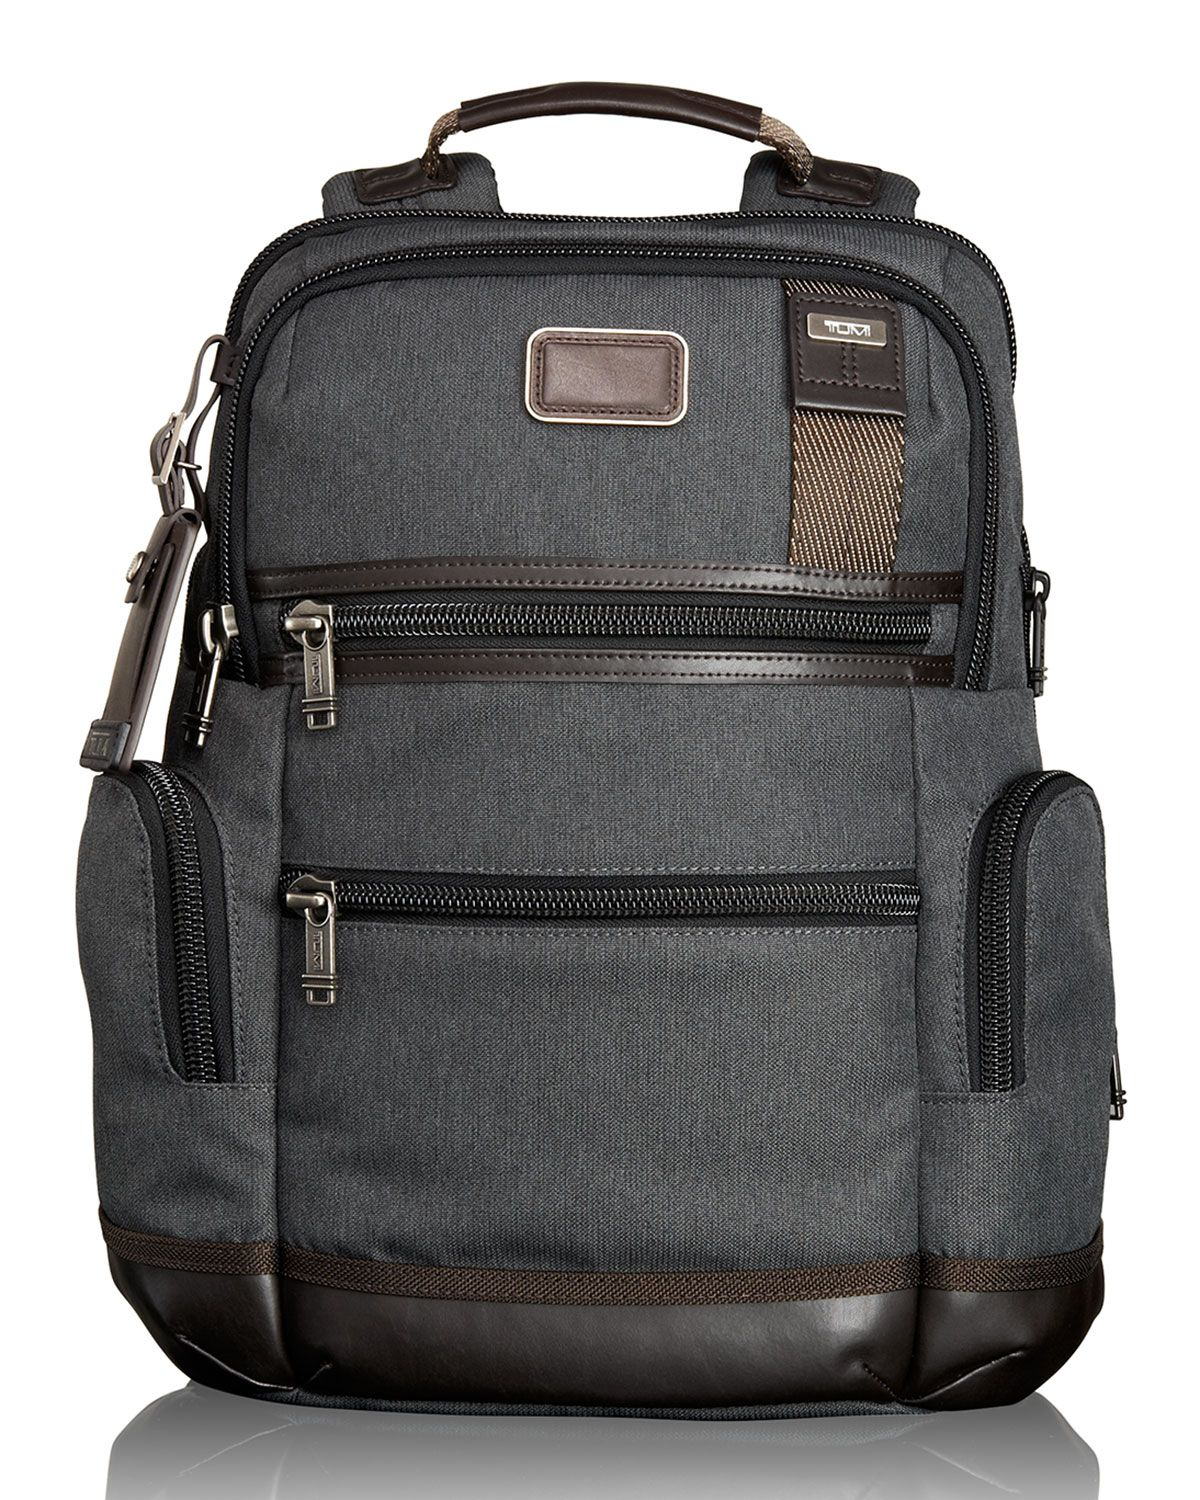 7bbab975f Alpha Bravo Anthracite Knox Backpack - Tumi | *Luggage & Bags ...